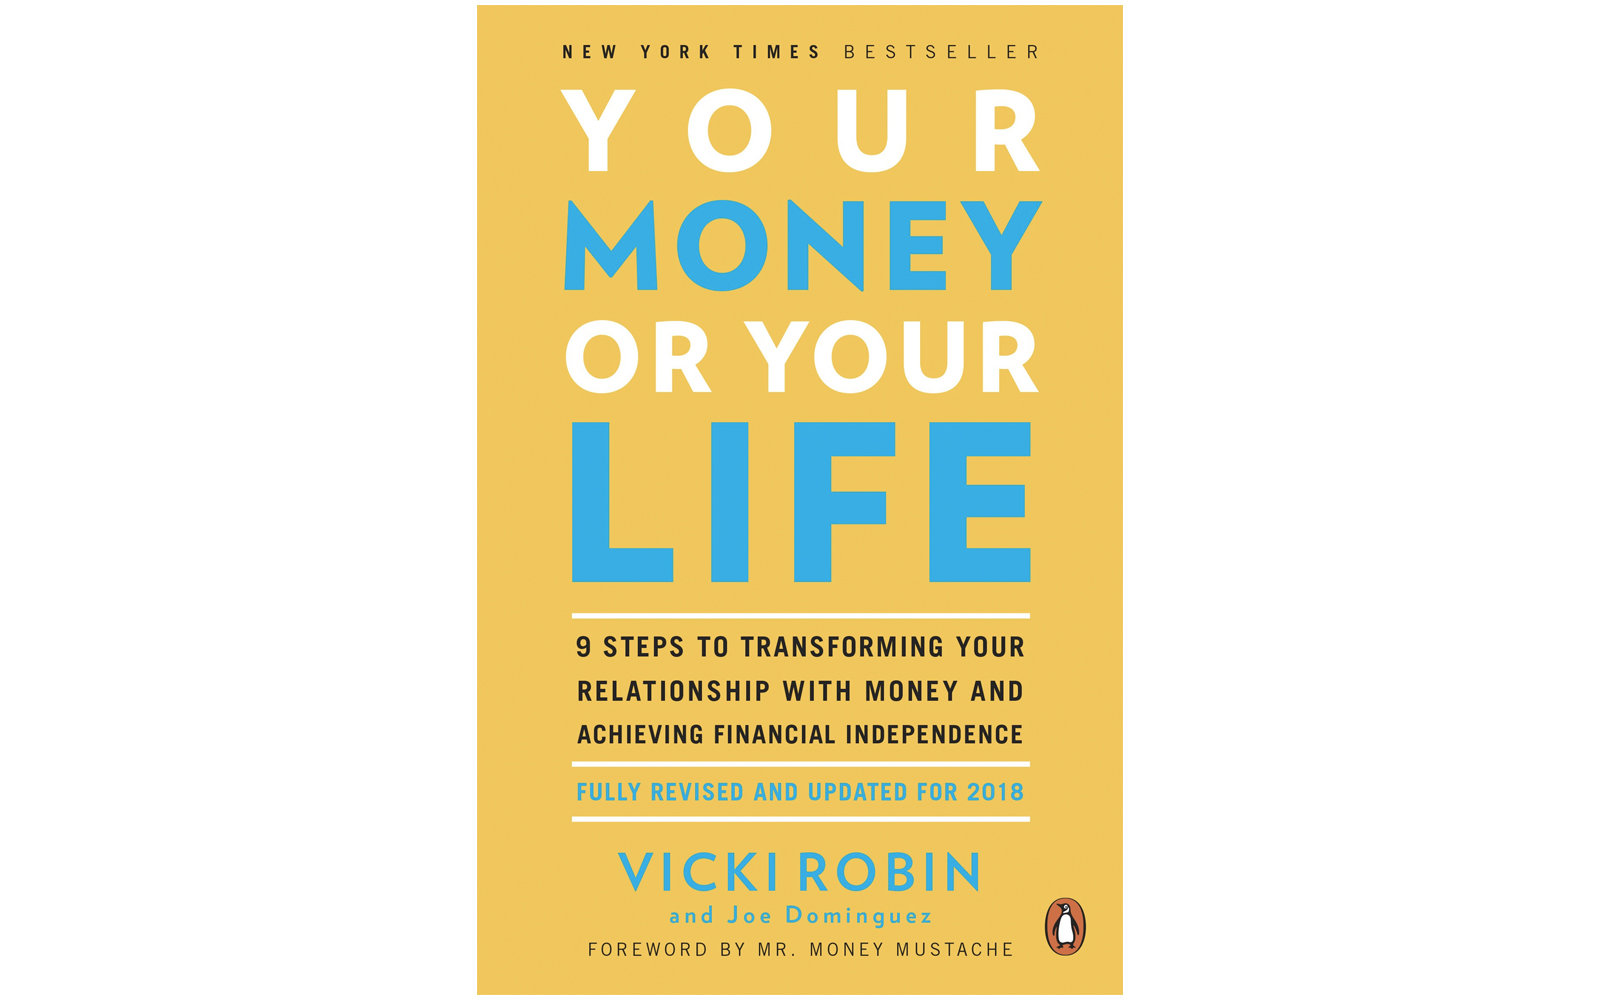 Your Money Or Your Life by Vicki Robin